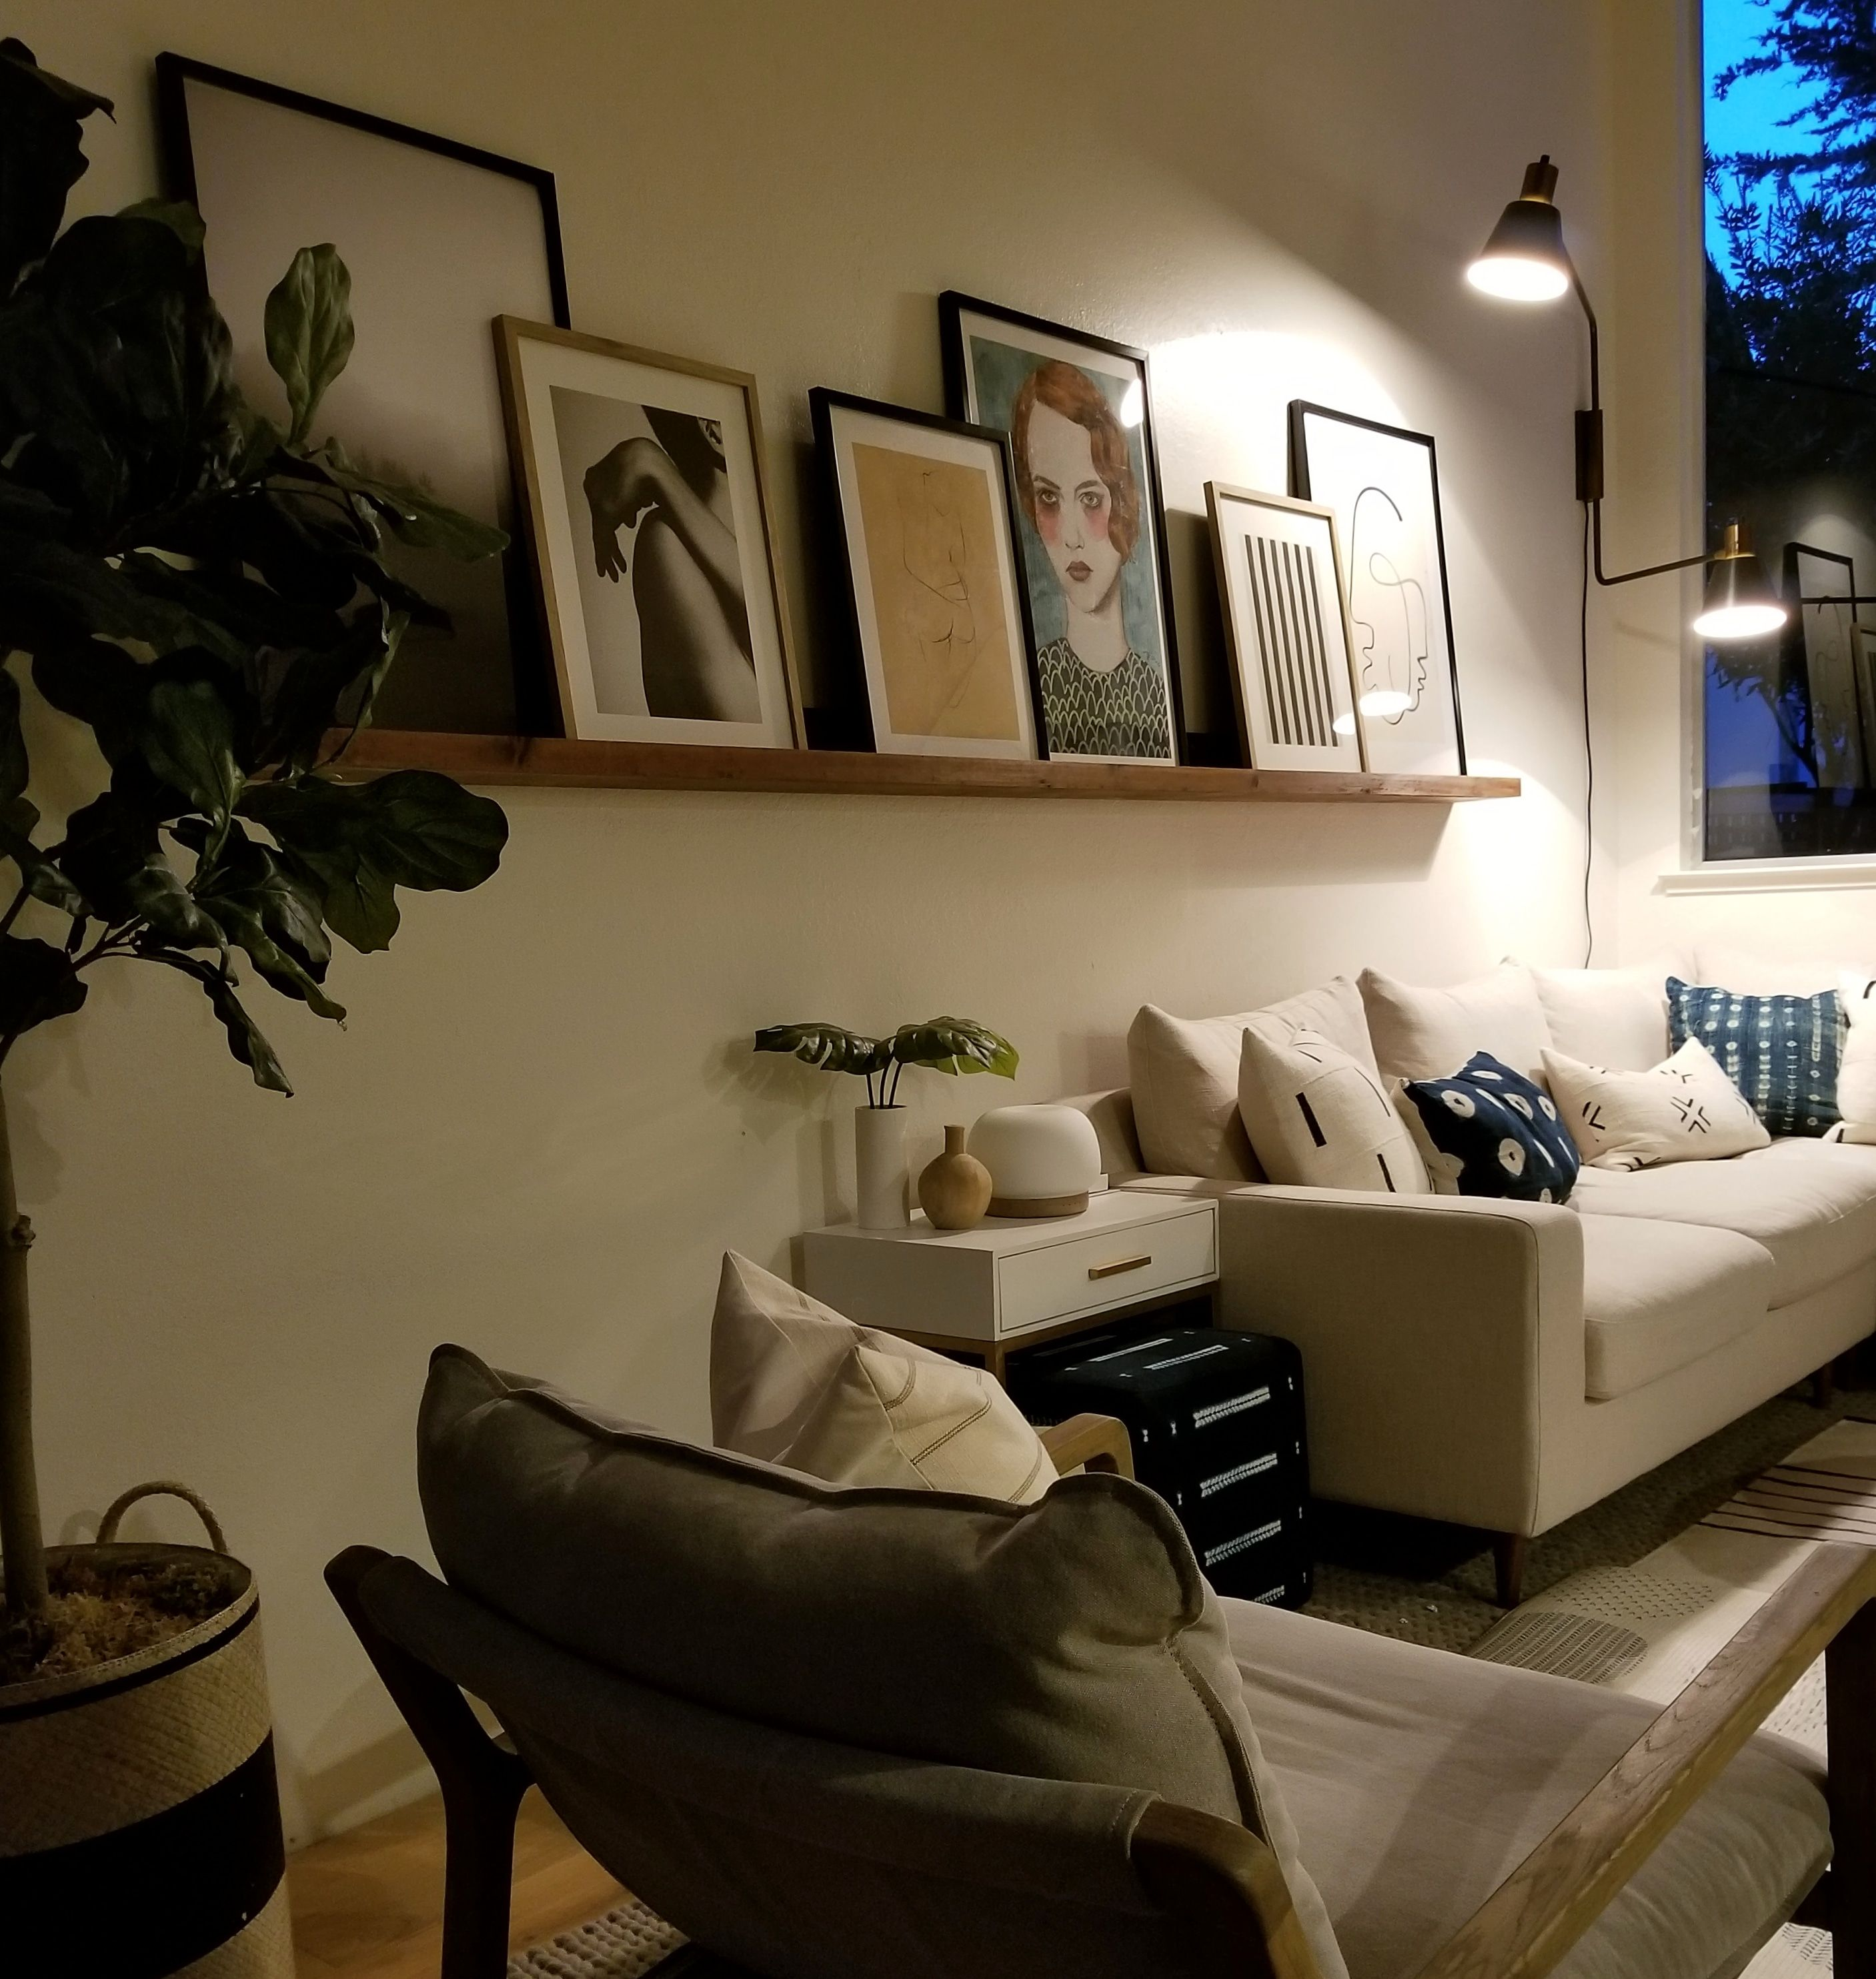 Diy 10 Foot Picture Ledge In 10 Steps For Under 50 Bucks Kismet House Family Room Walls Picture Ledge House